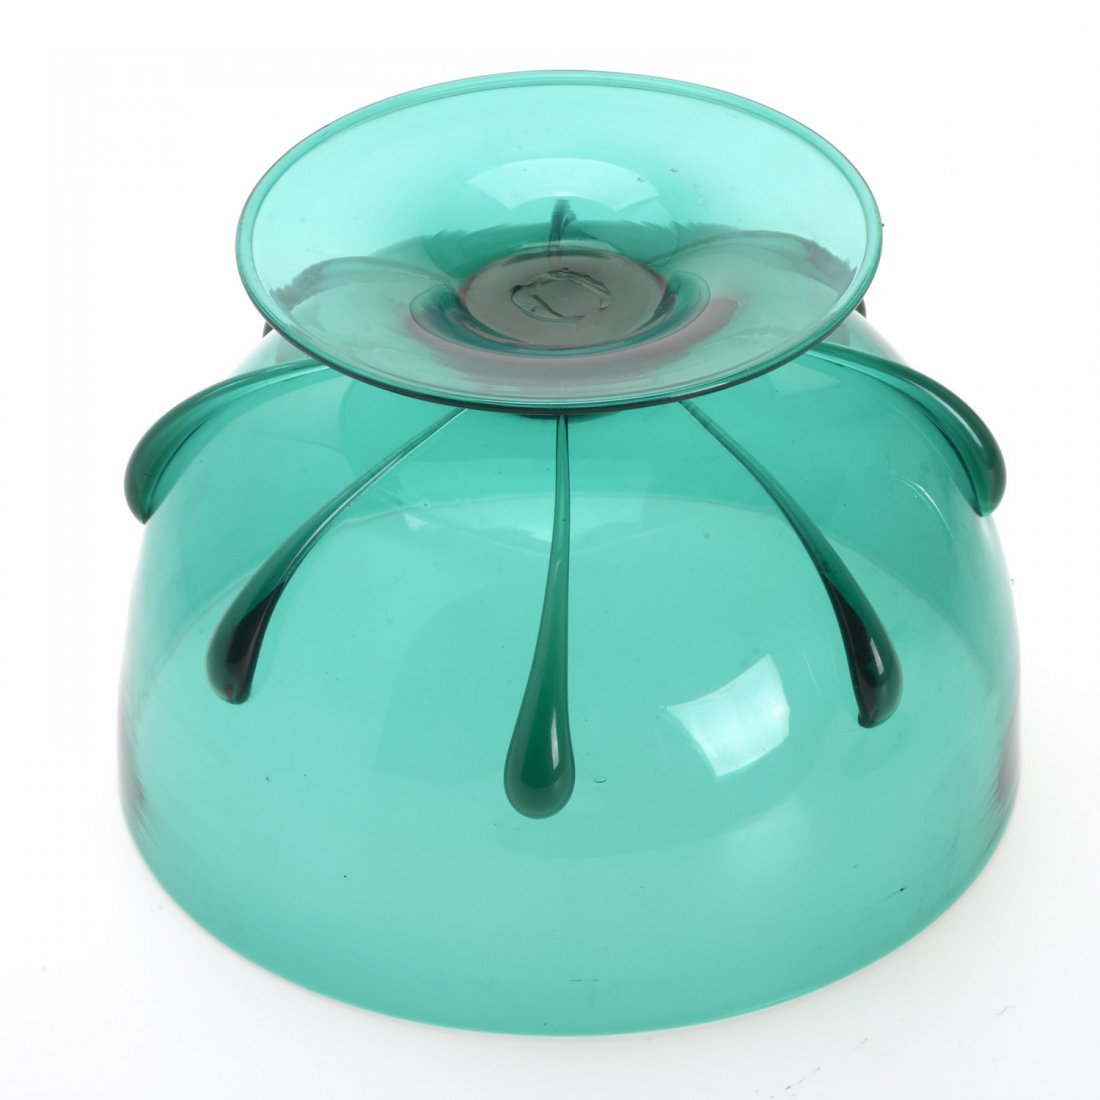 MVM Cappellin footed glass bowl - 6